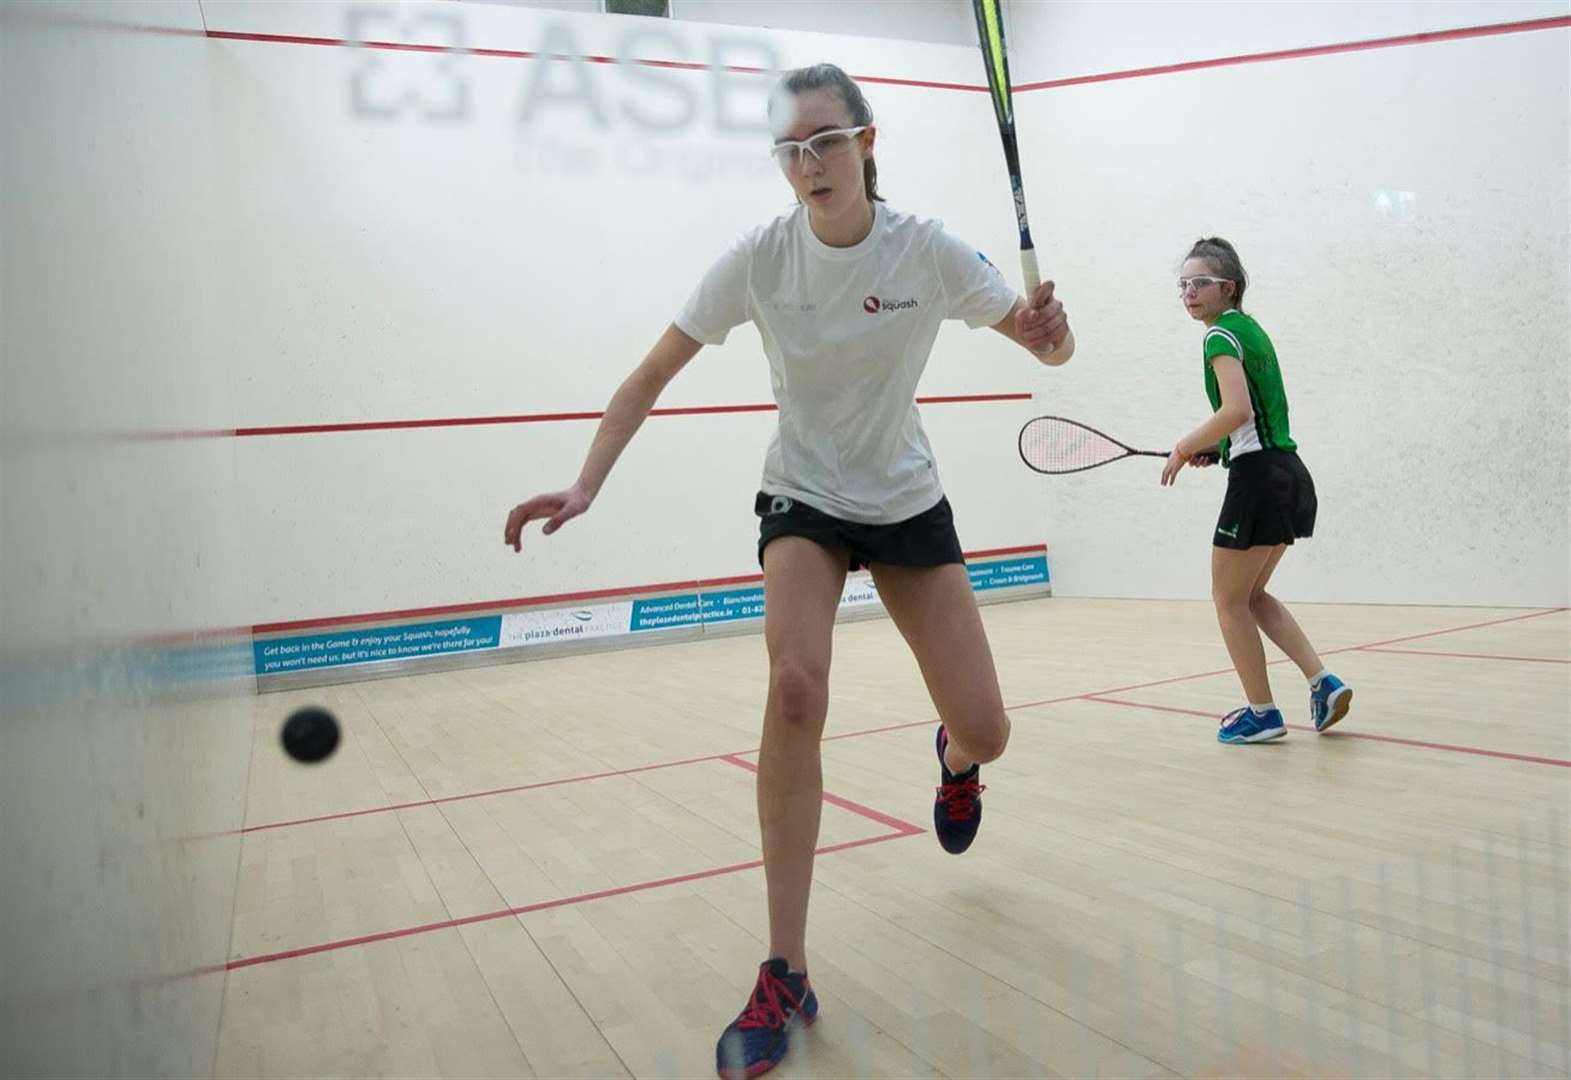 Risbygate to host top county players for squash contest